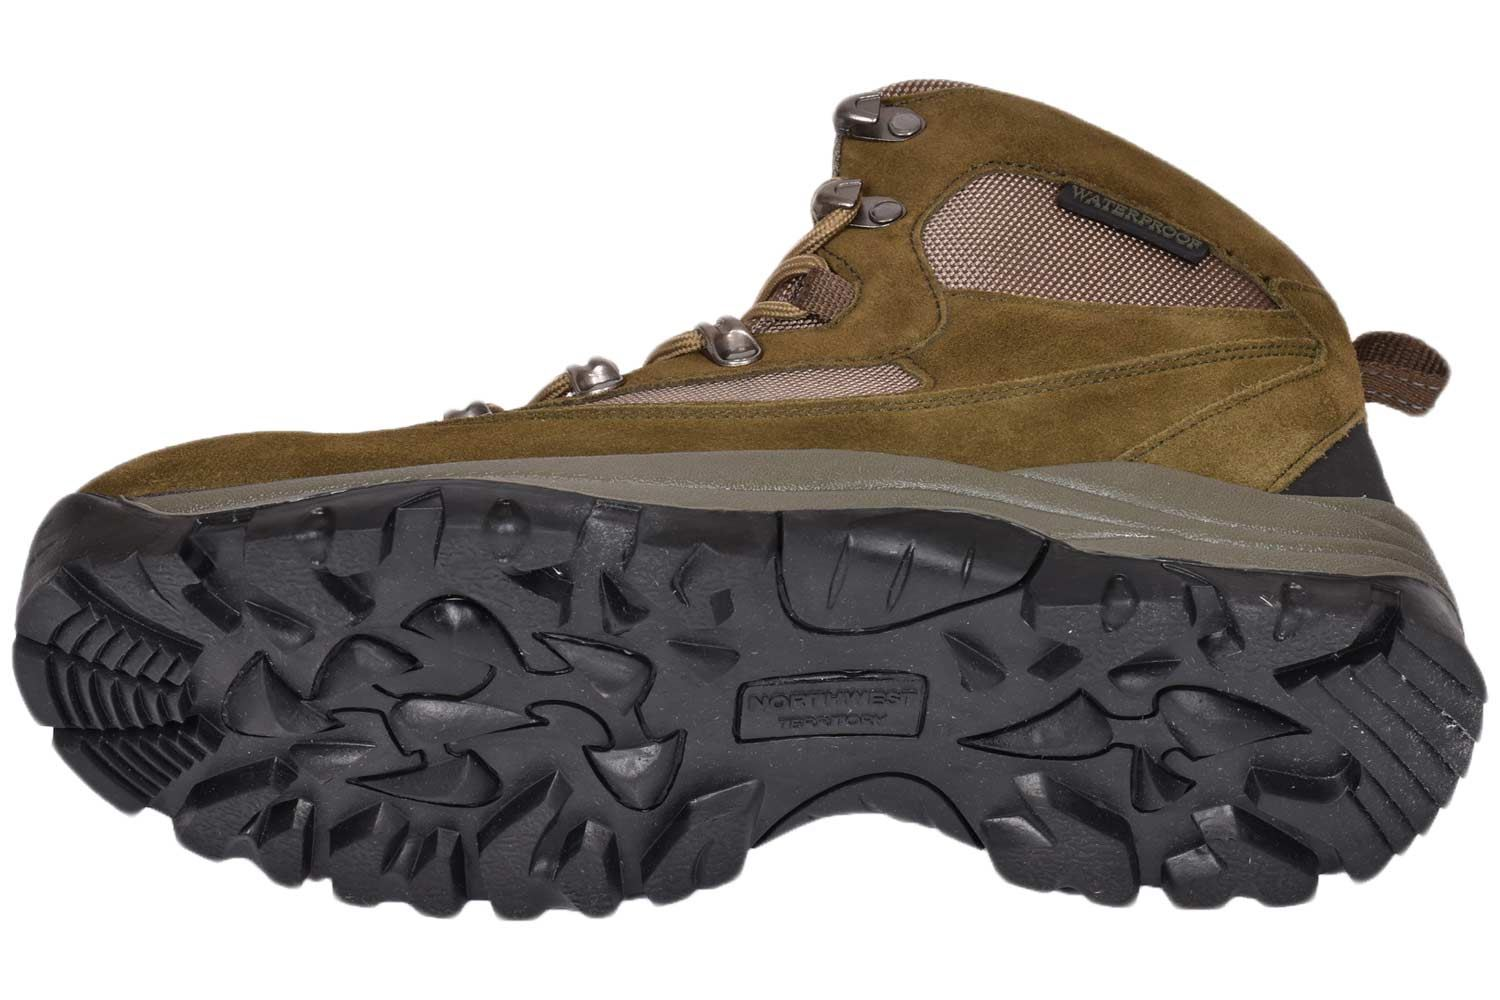 Mens High Ankle Boot Northwest Walking Hiking Trail Leather Waterproof Rise Shoe